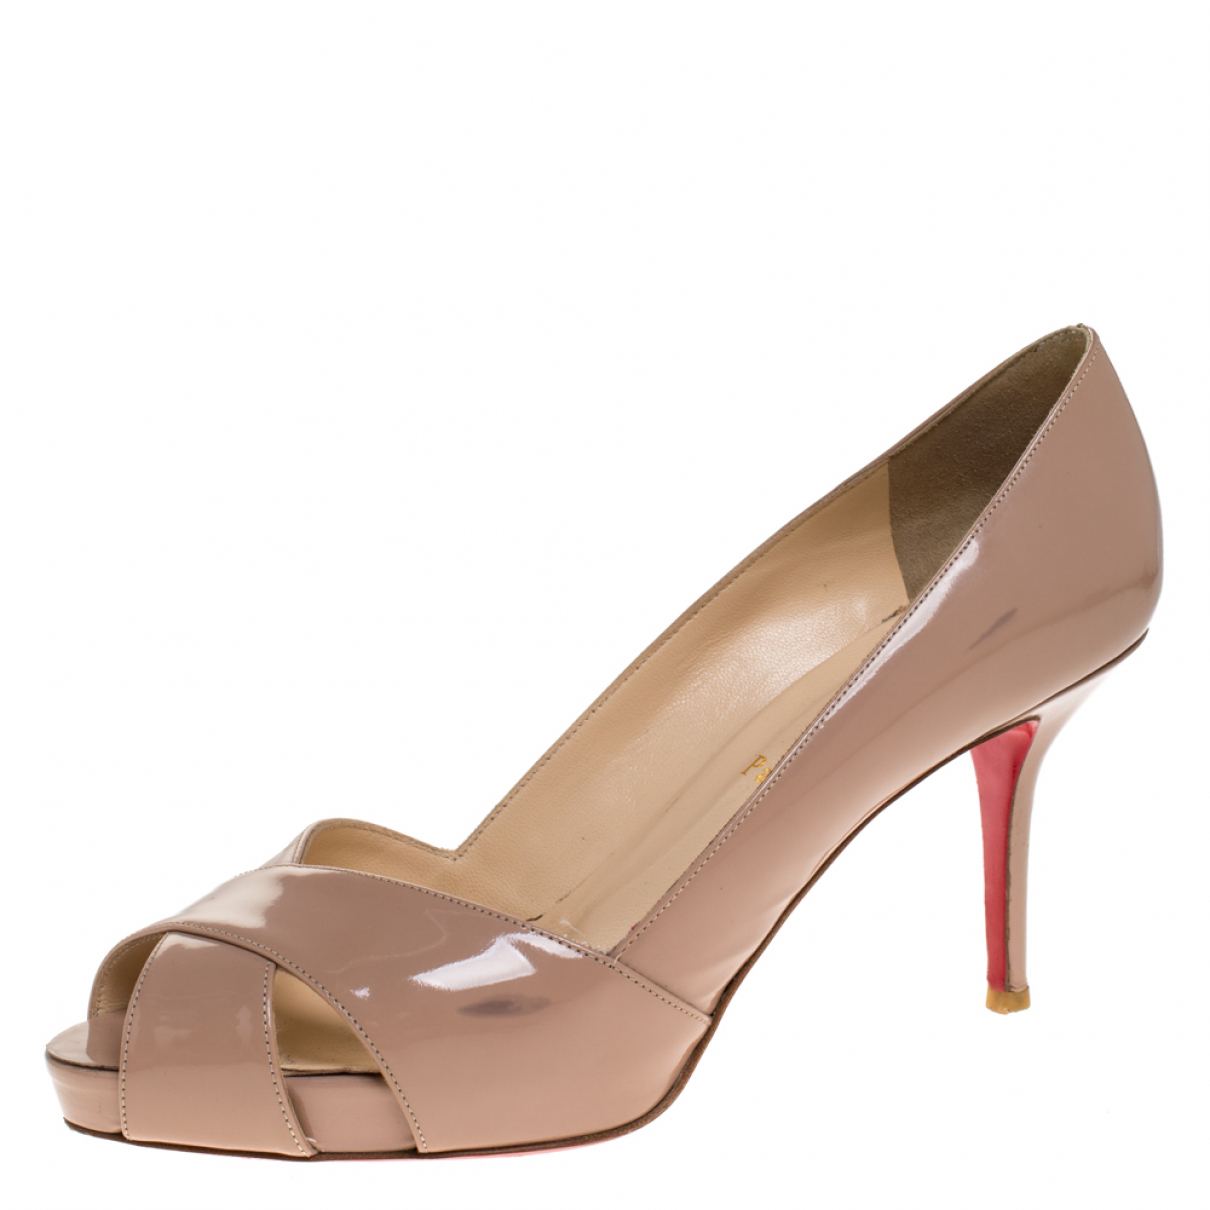 Christian Louboutin N Beige Patent leather Sandals for Women 8.5 US